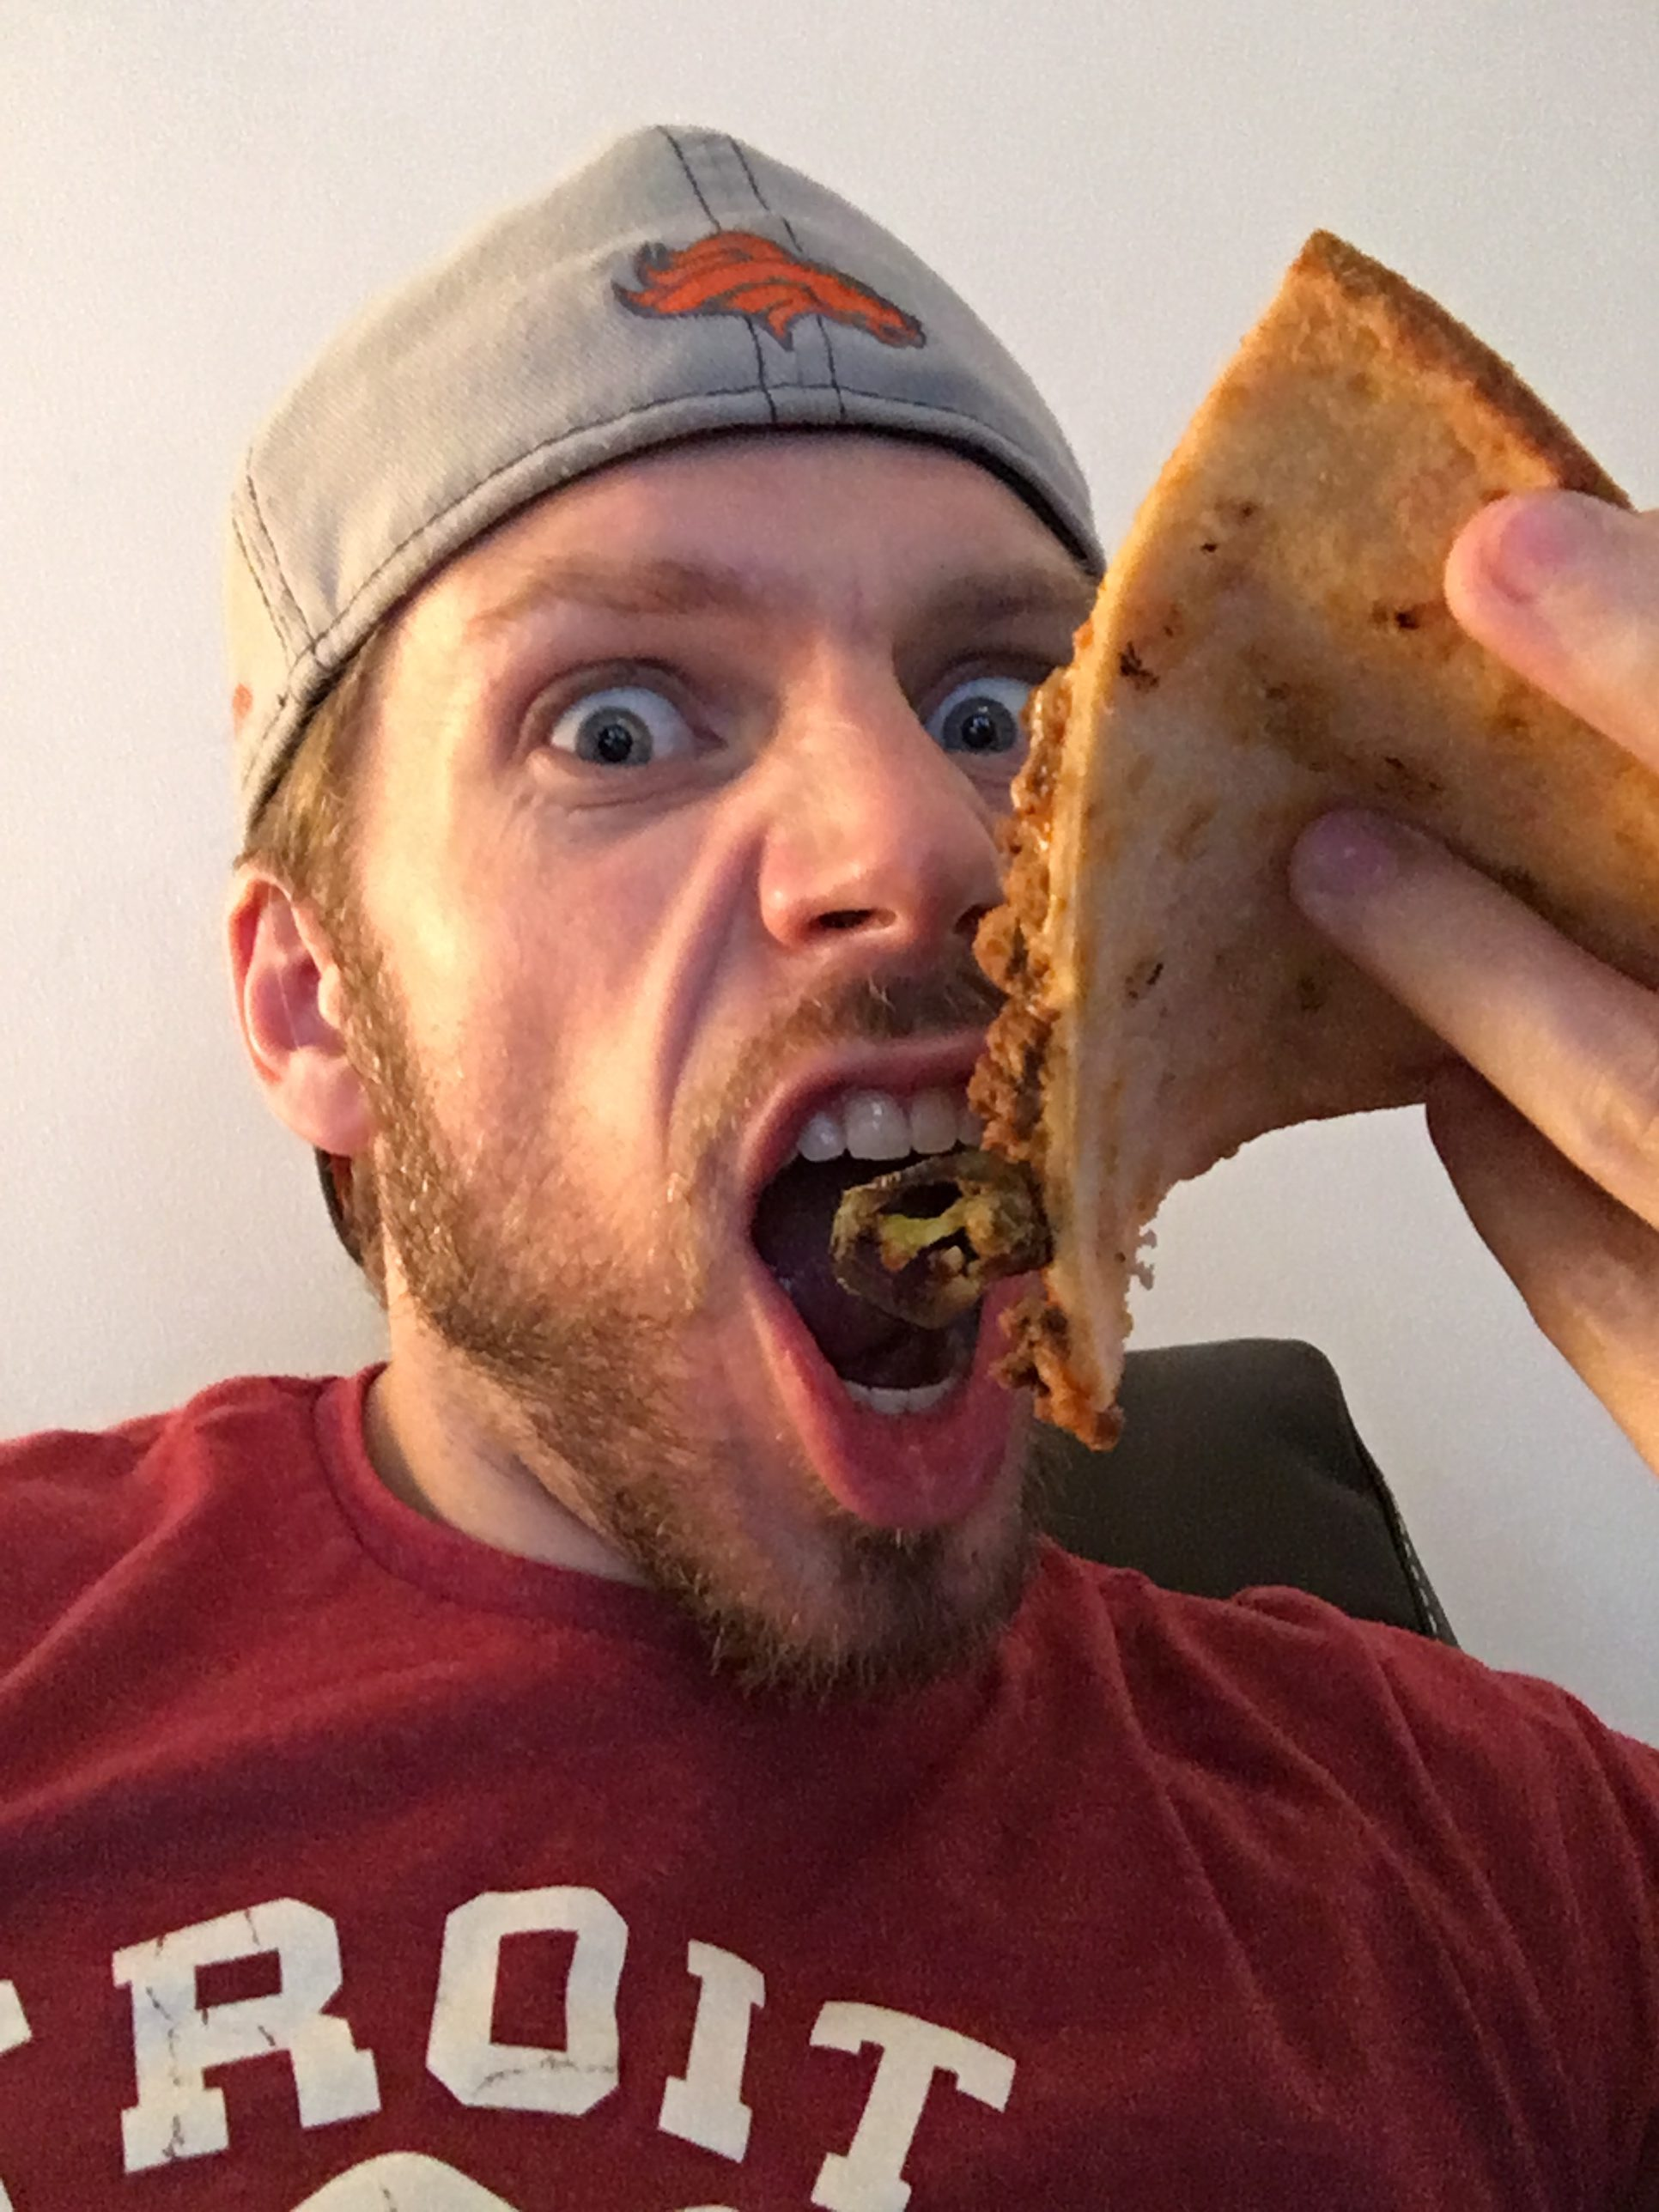 Pizza Eating After Workout